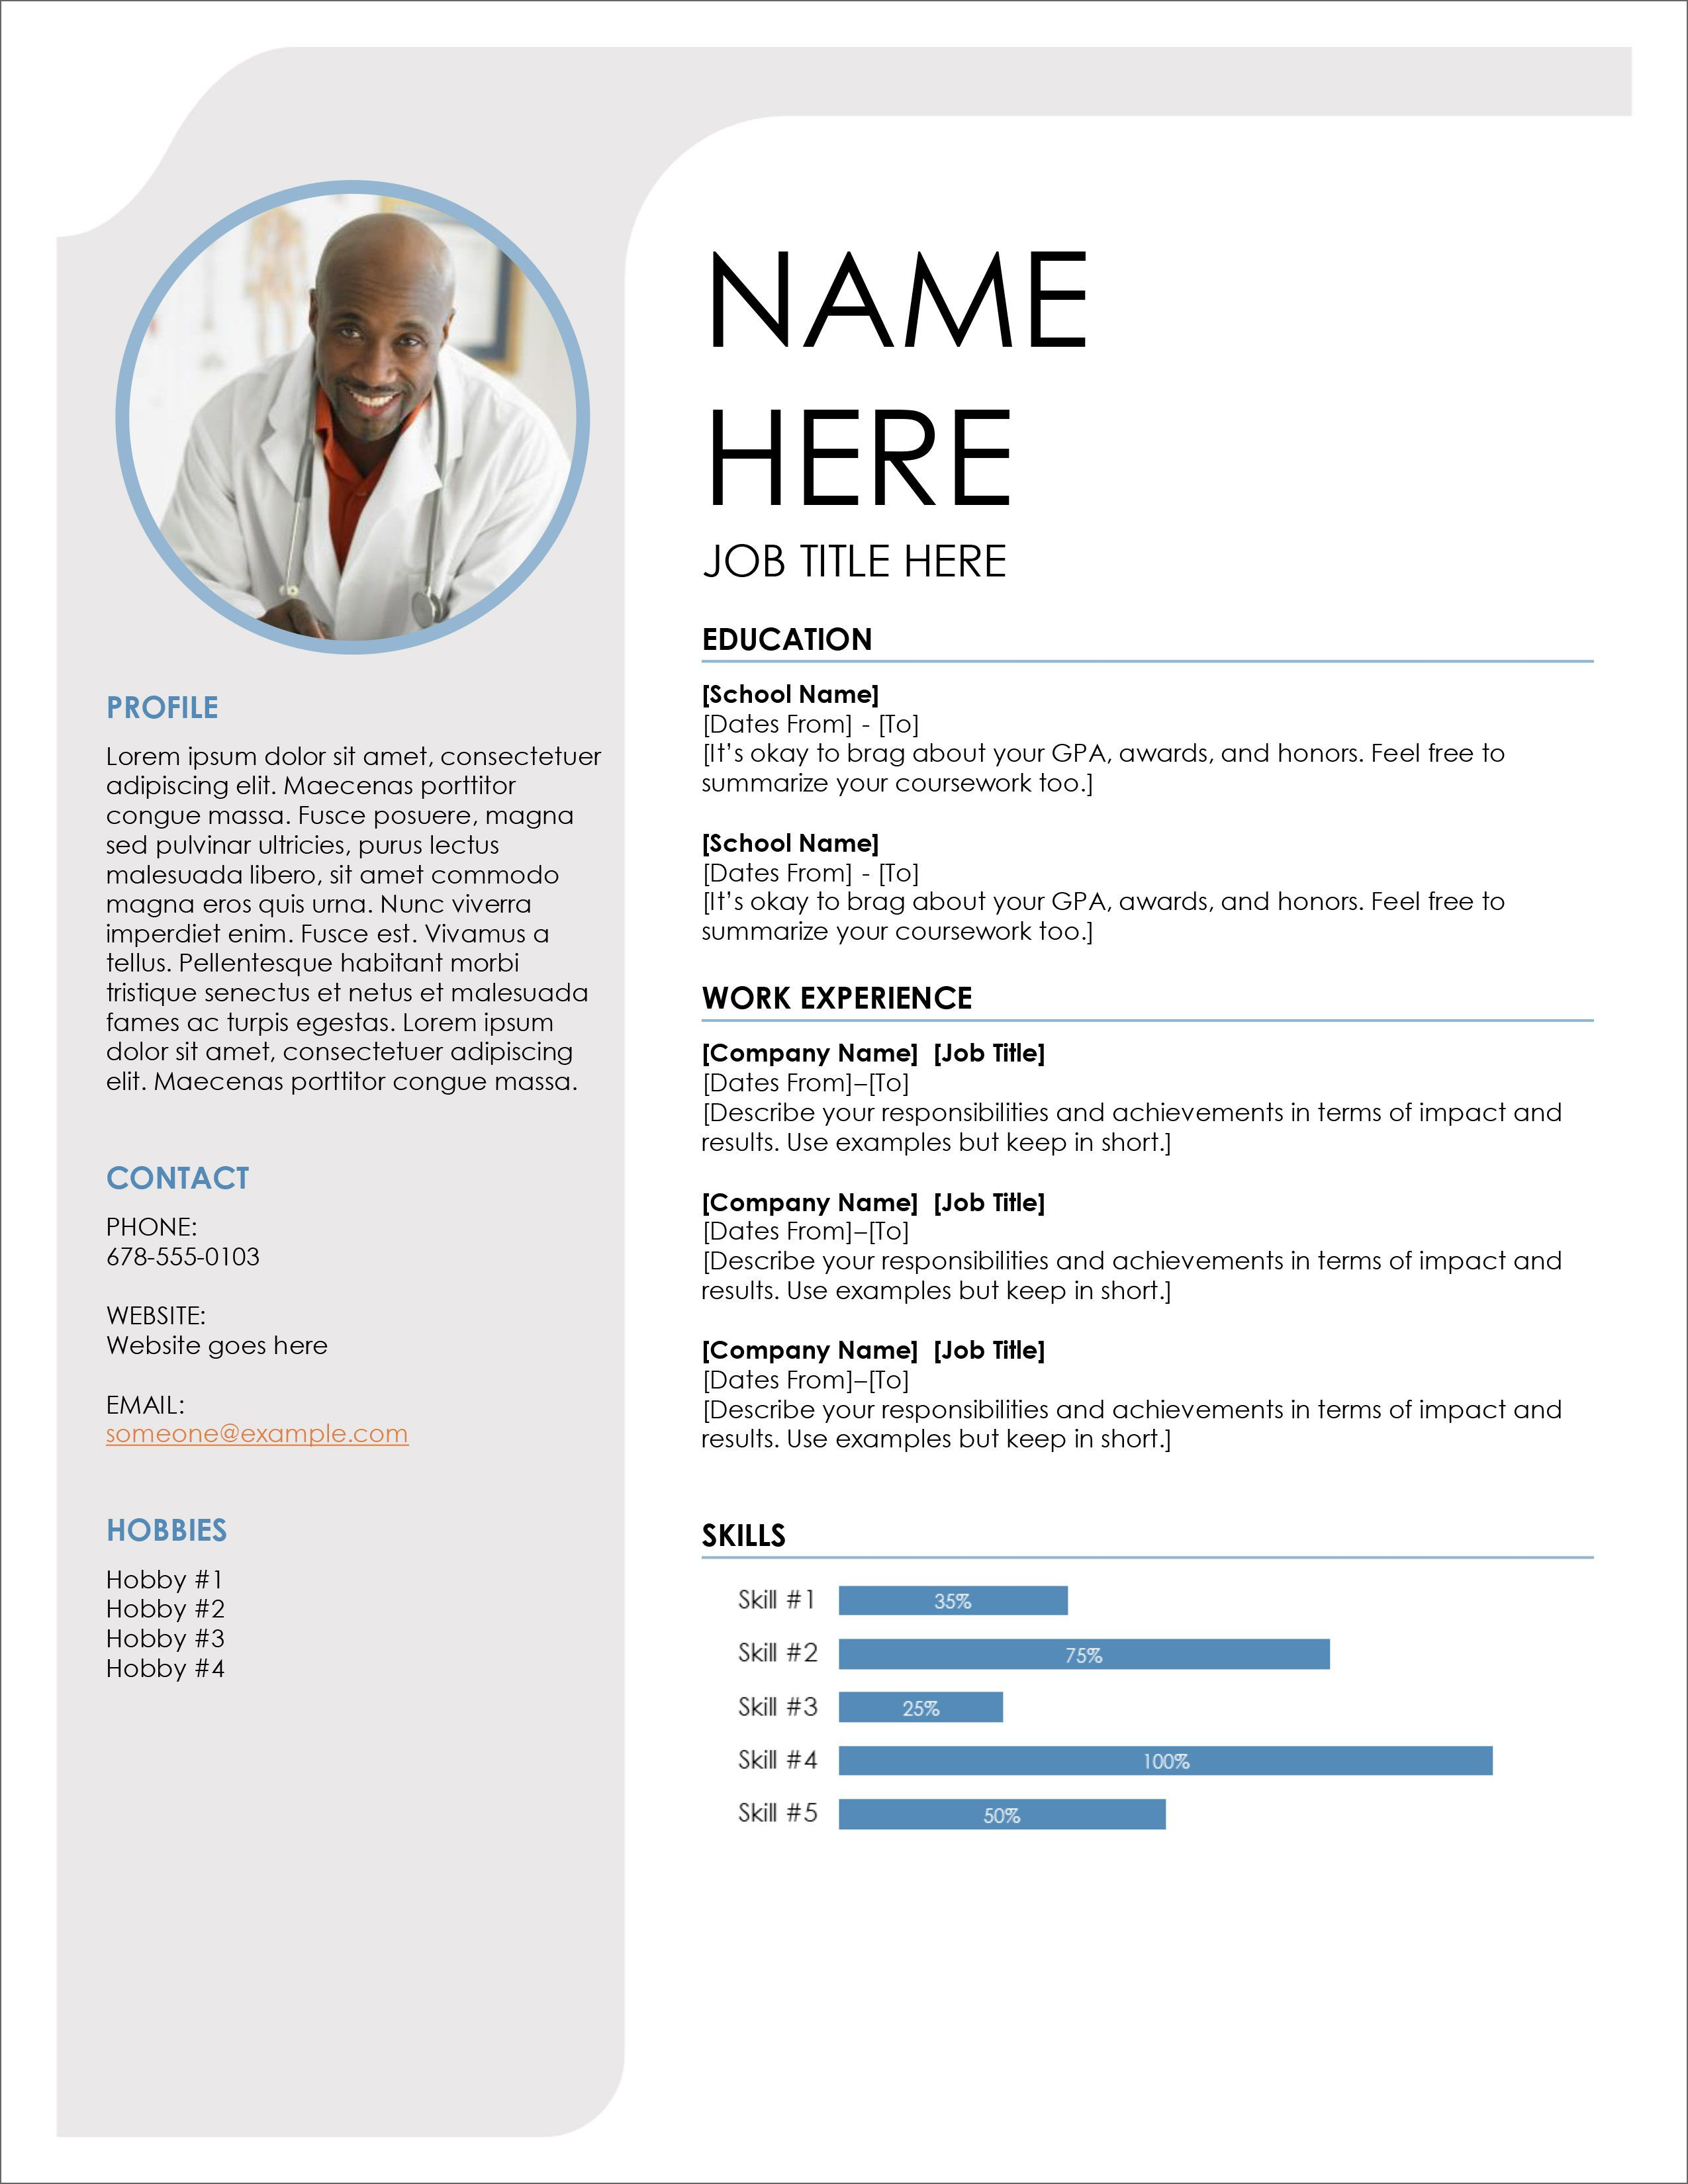 009 Amazing Resume Template Free Word Download Example  Cv With Photo Malaysia AustraliaFull